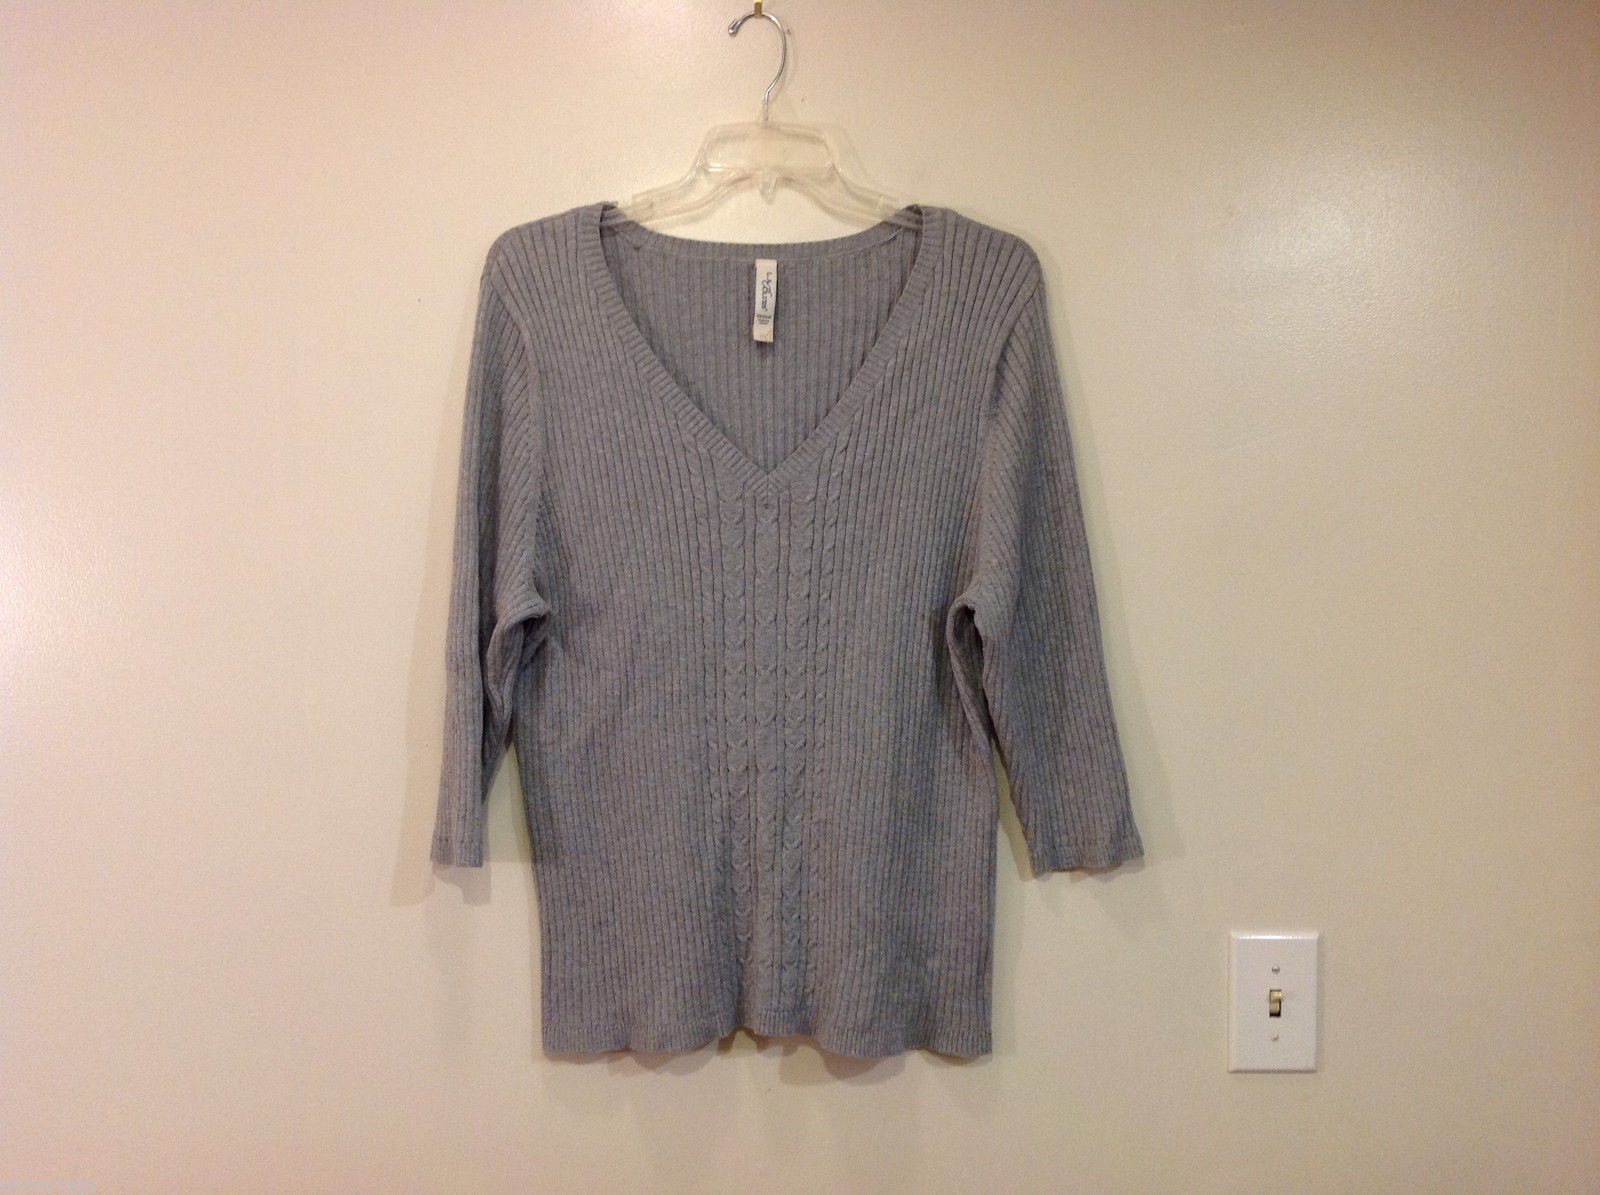 L.A.Blues Knitted Gray Deep V-neck 3/4 sleeve Pullover Sweater Size 22/24W